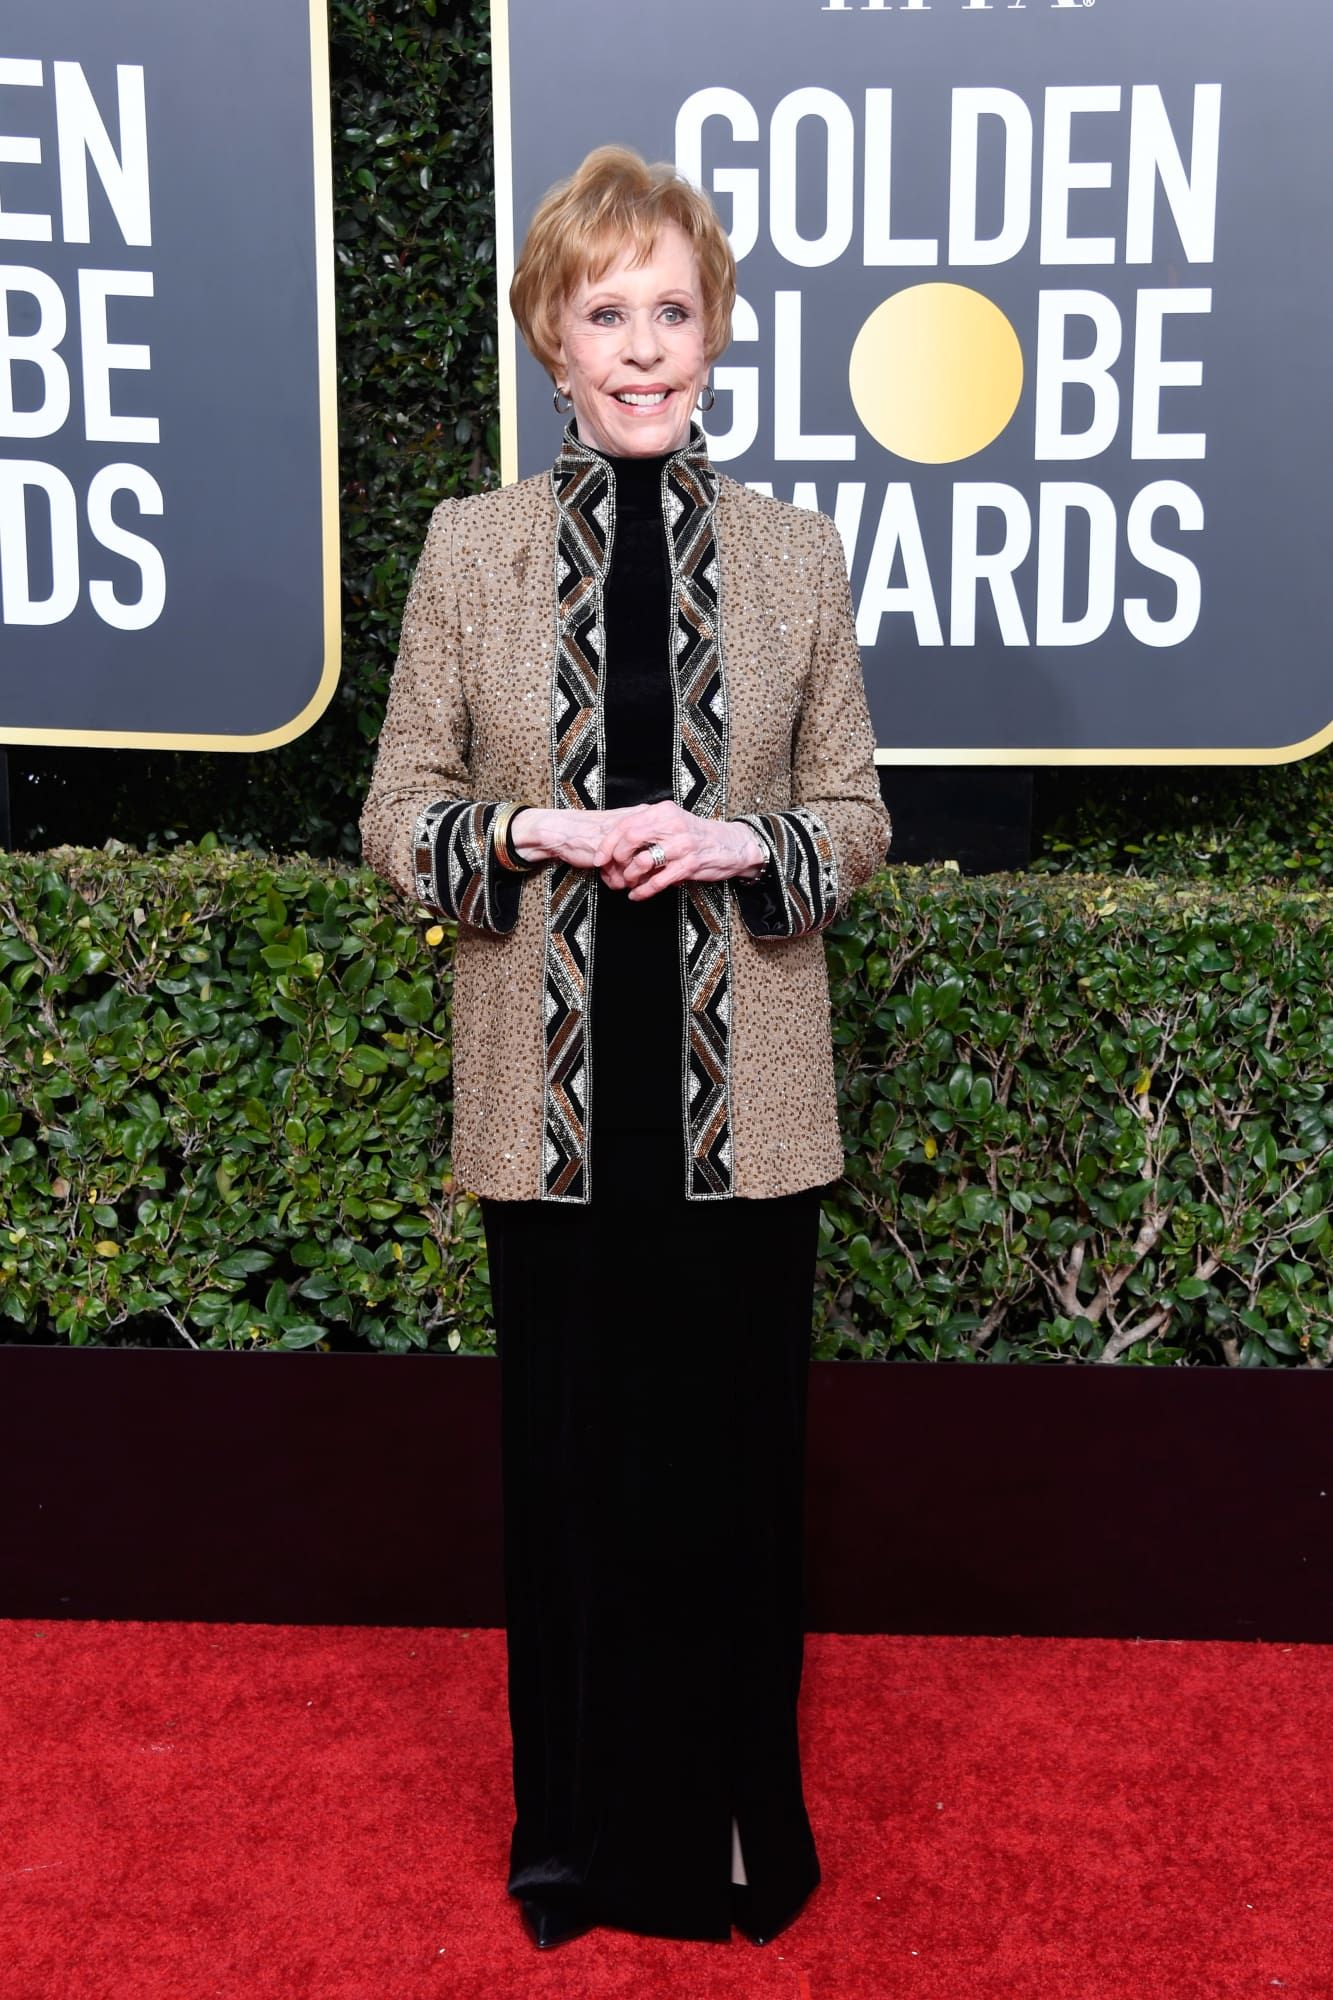 Golden Globes 2019 Every Look From The Red Carpet Golden Globes